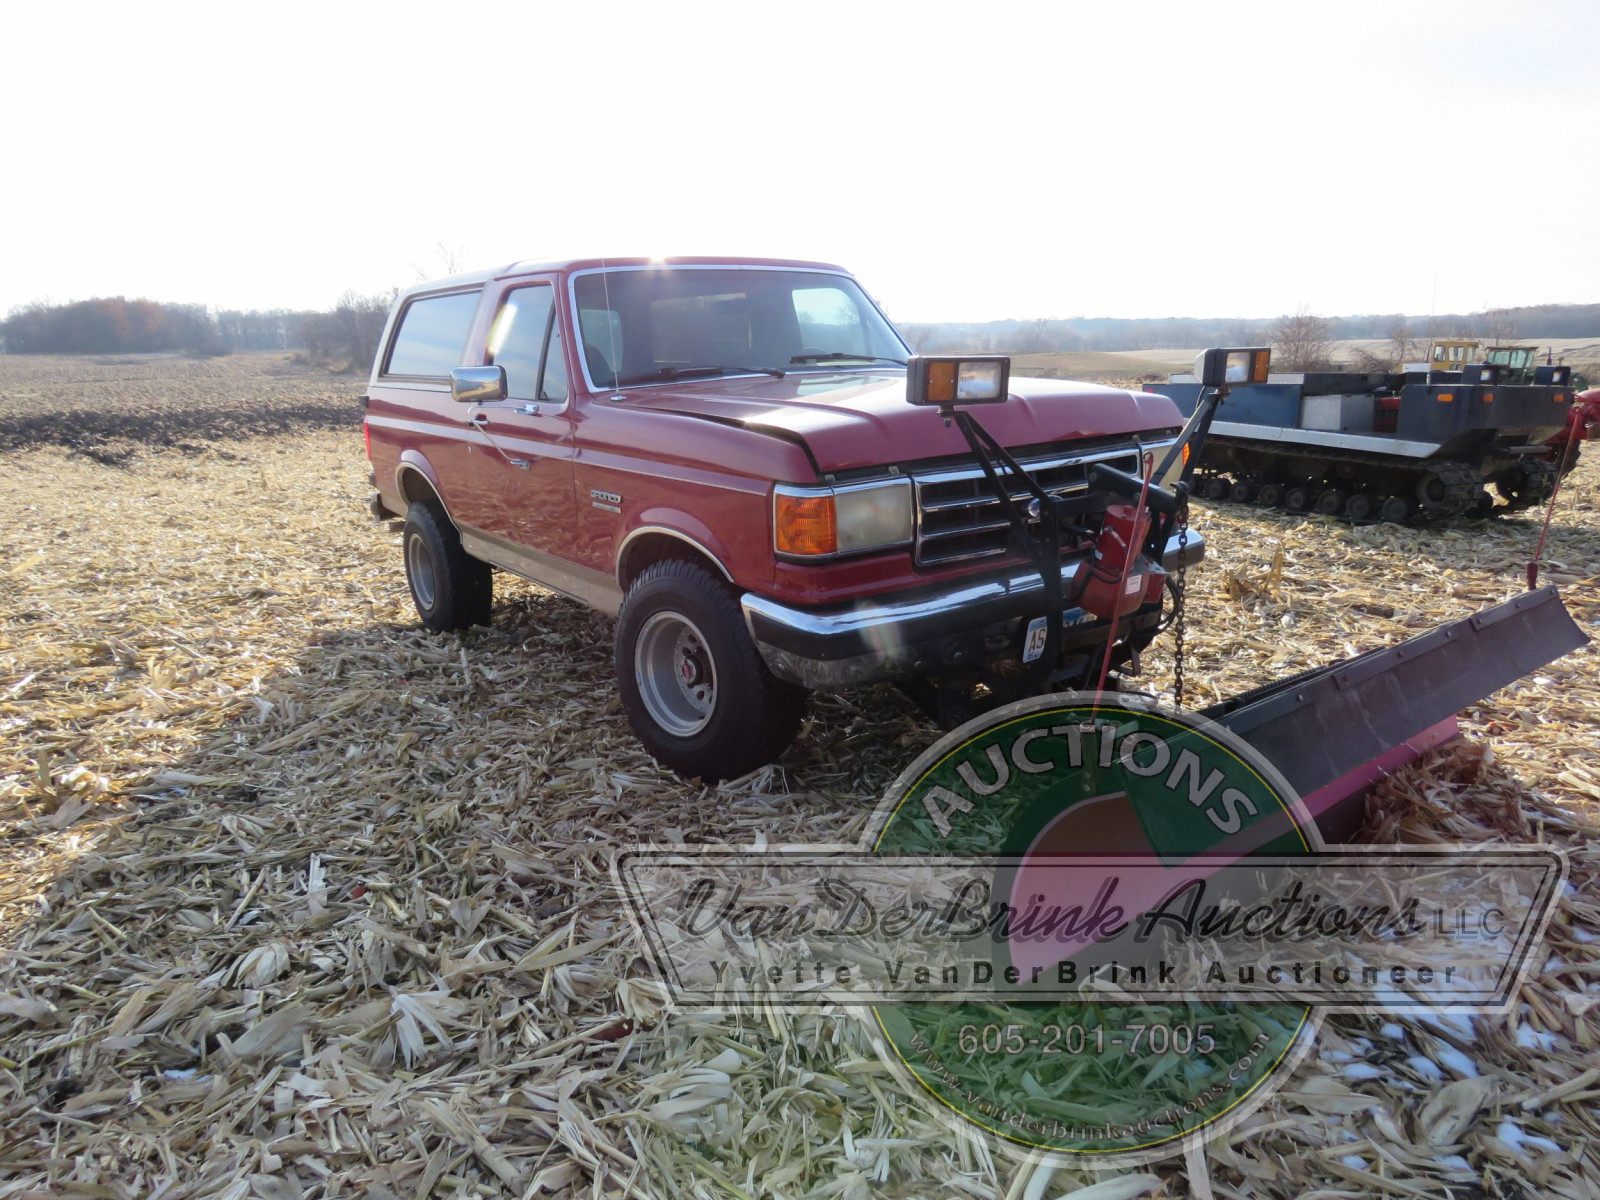 1989 Ford Bronco with Snowplow - Image 3